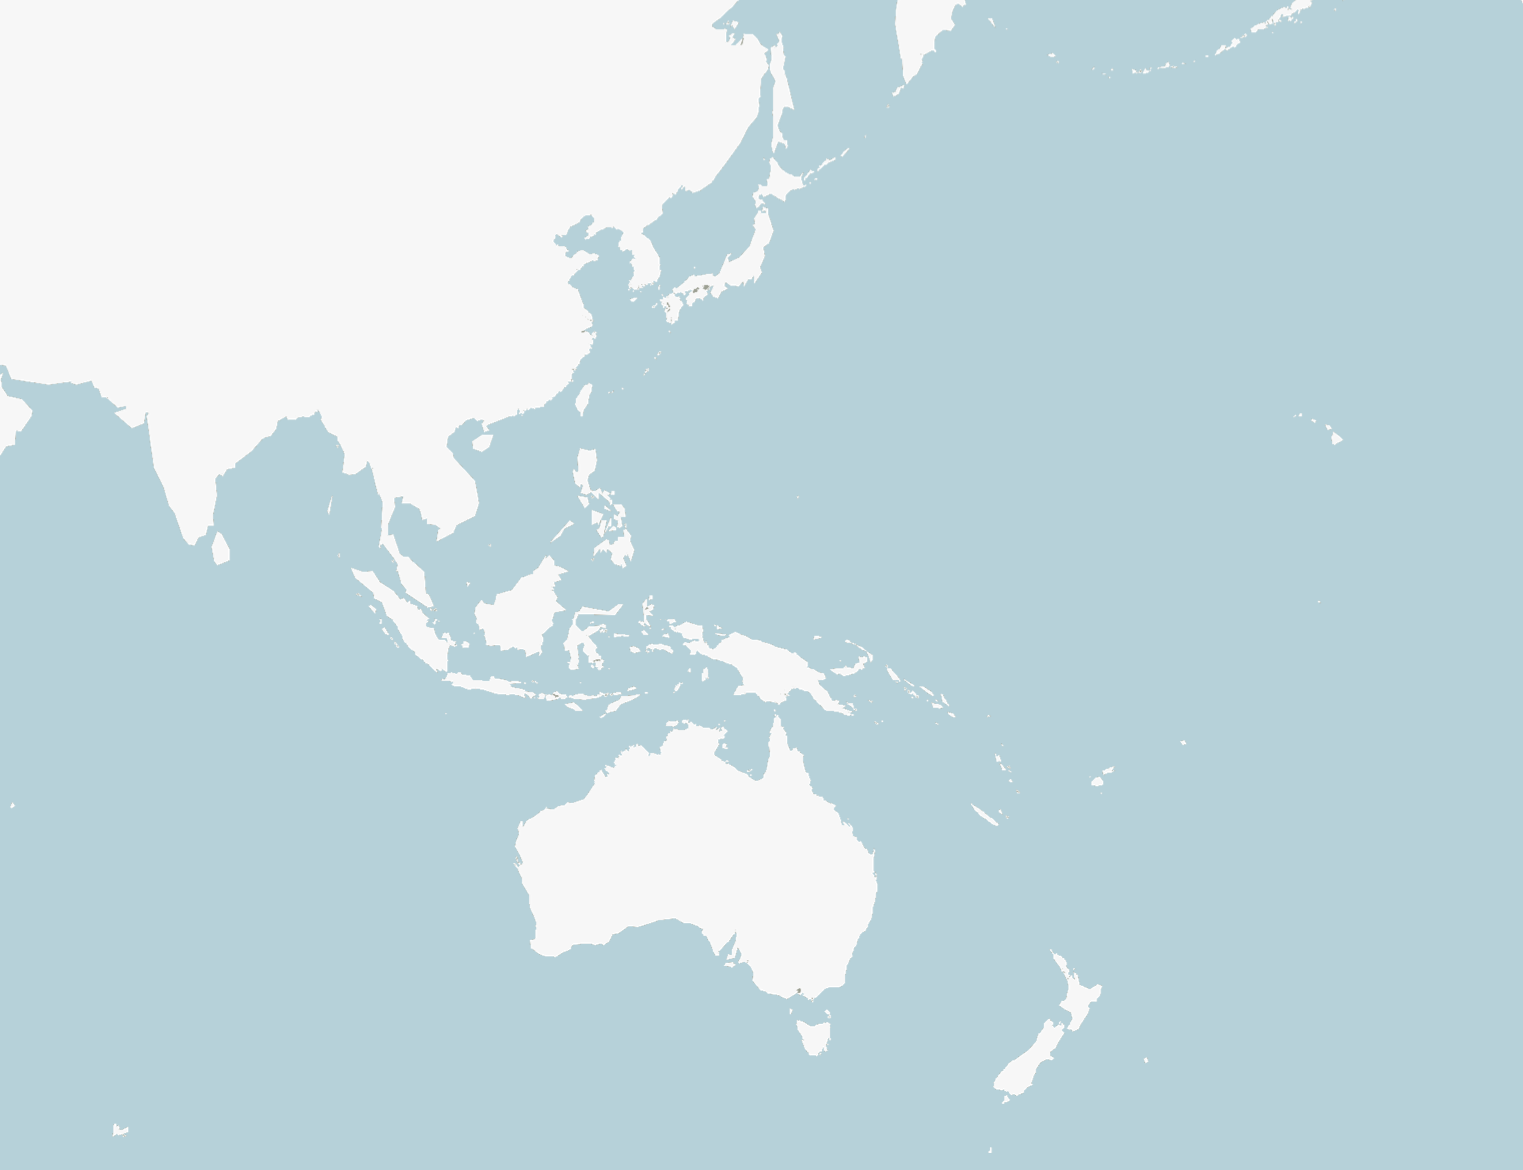 A blank map of Asia and the Pacific region with a blue background